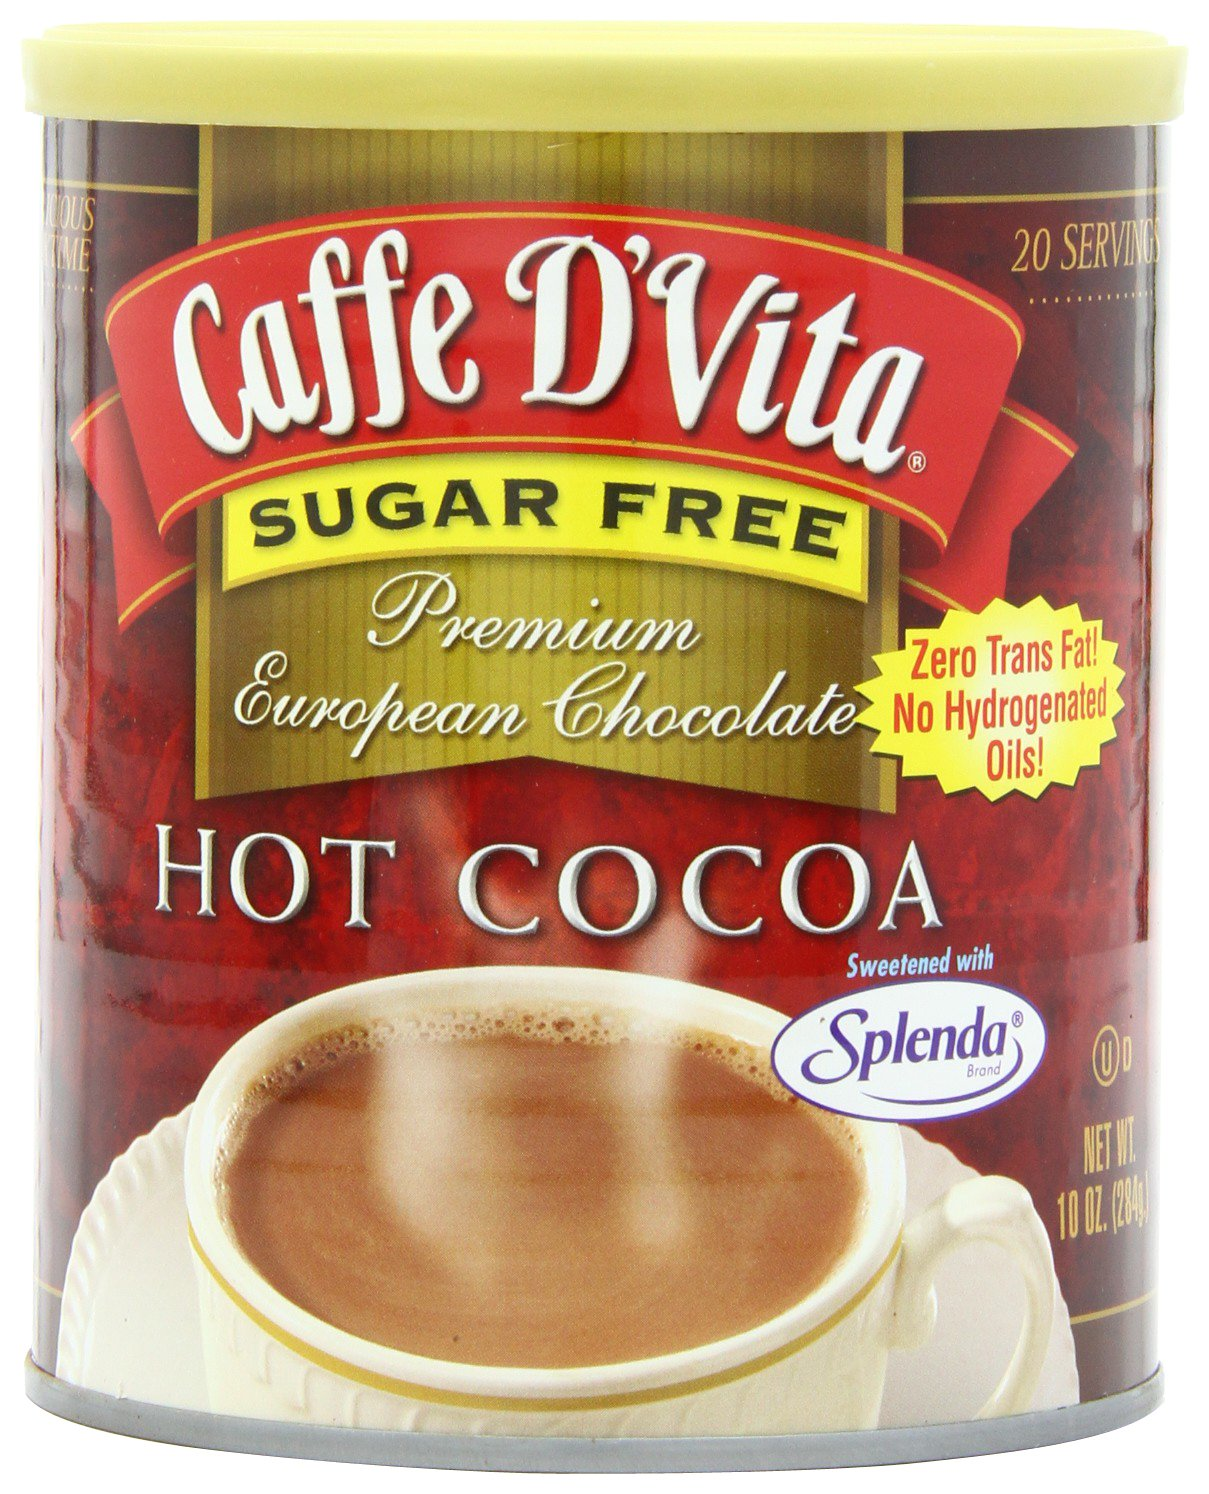 Caffe D'Vita Sugar Free Hot Cocoa, 10-Ounce Cans (Pack of 6) by Caffe D'Vita